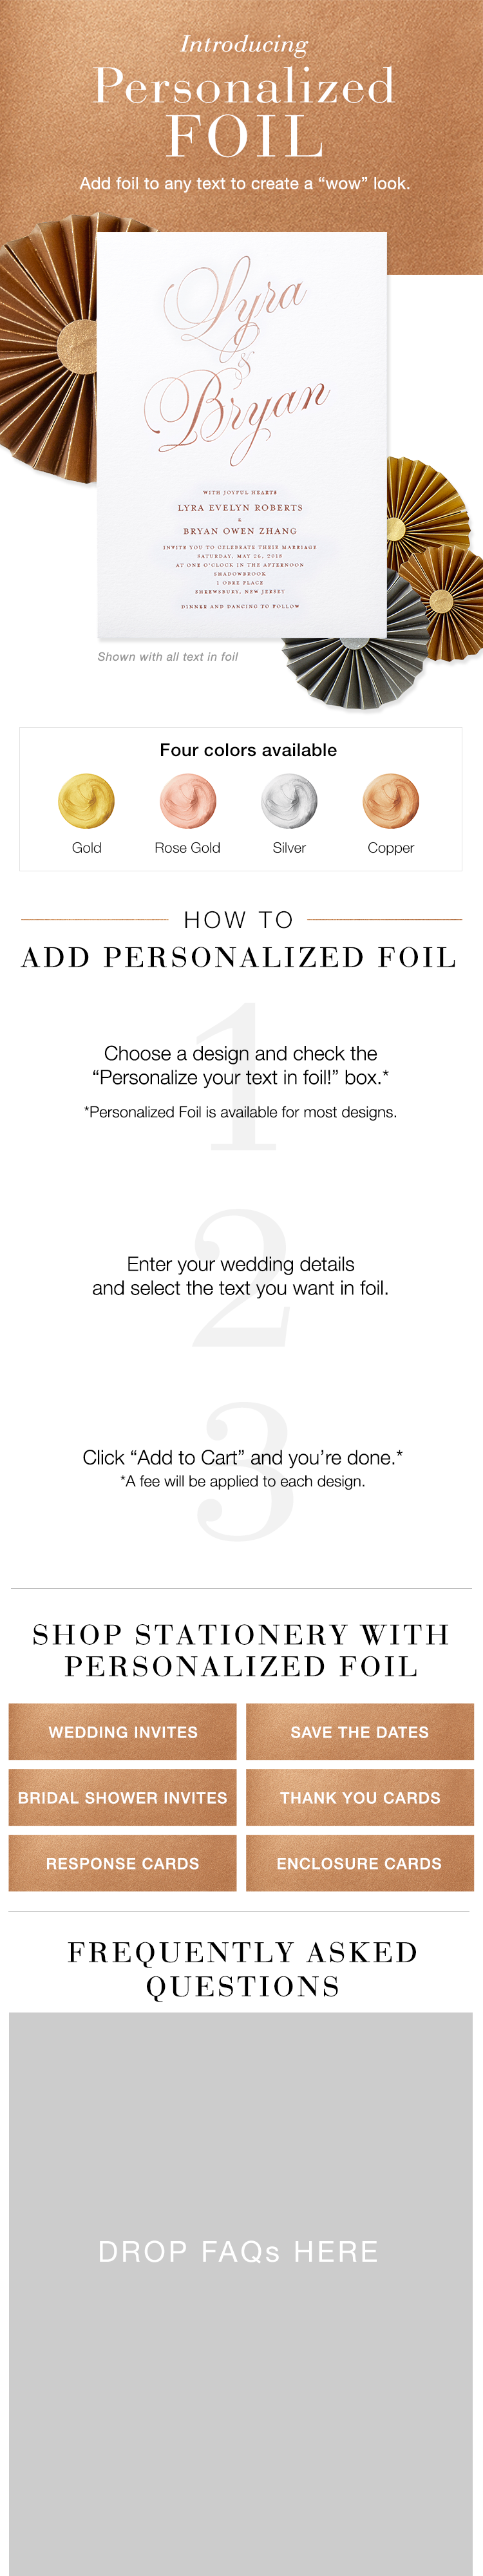 PersonalizedFoil_mobilepage.png